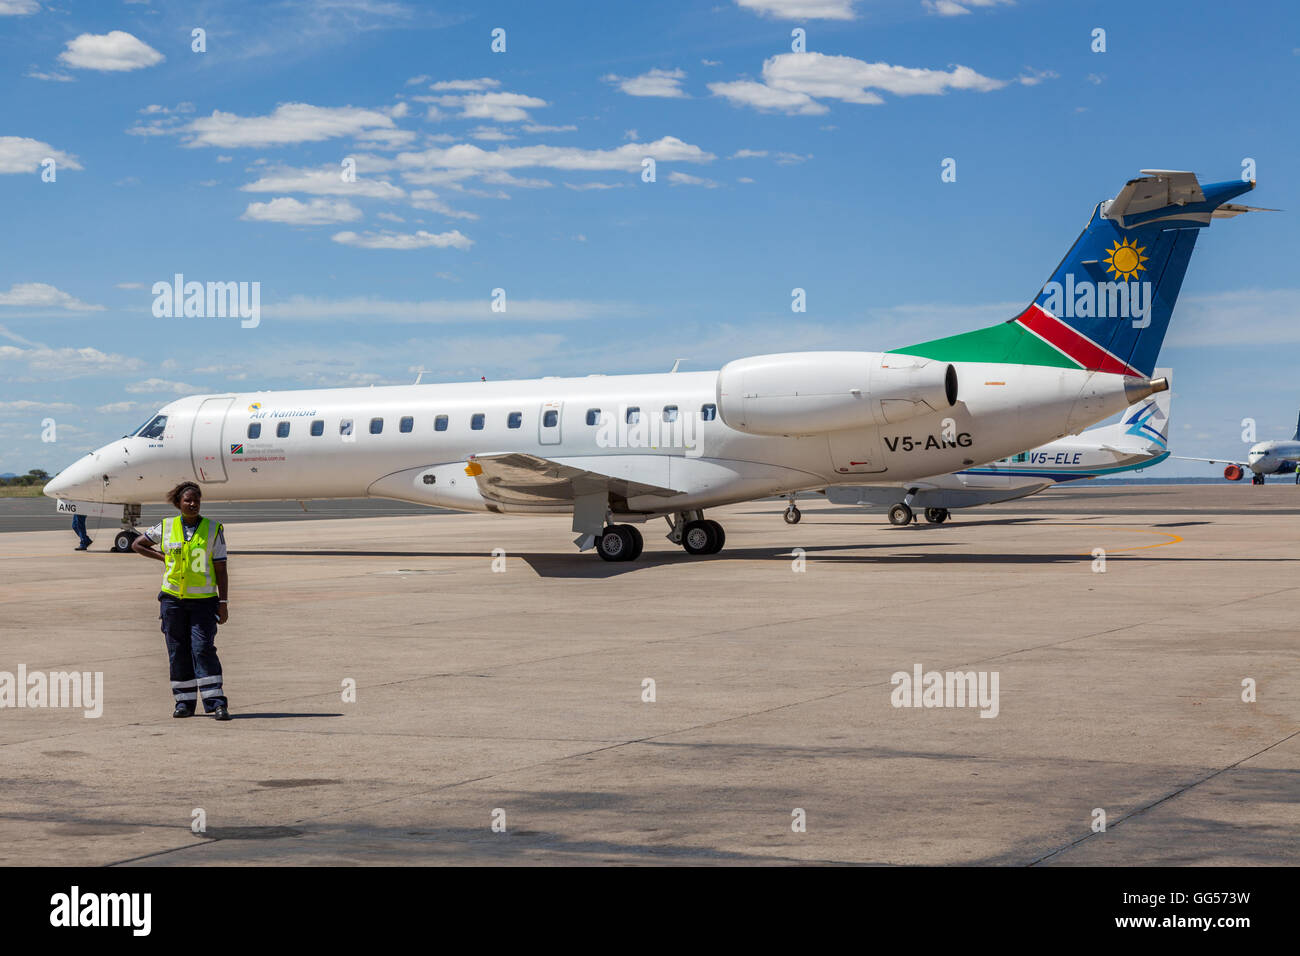 Namibia Air Namibia Embraer ERJ 135 V5-ANG at Windhoek Hosea Kutako International Airport - Stock Image